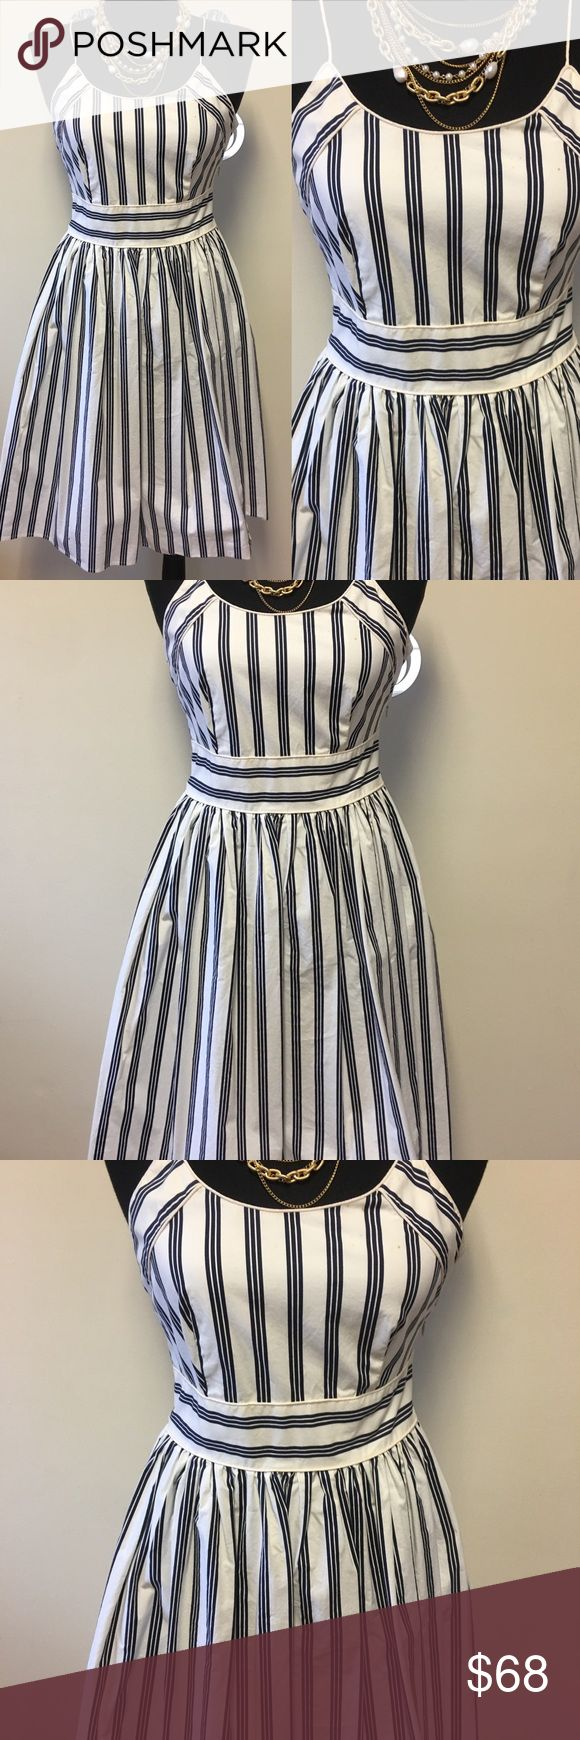 Vtg Navy Stripe Dress Vintage Navy Stripe Dress, very sailor stylish. Size 6, Dress does have a stain in front. Other 9/10 condition. Side zip. Perfect for Sunday Brunch. Bust: 19 Waist: 15 Length: 39. All measurements are flat, approx.   Mannequin is size 8 for reference Vintage Dresses Midi